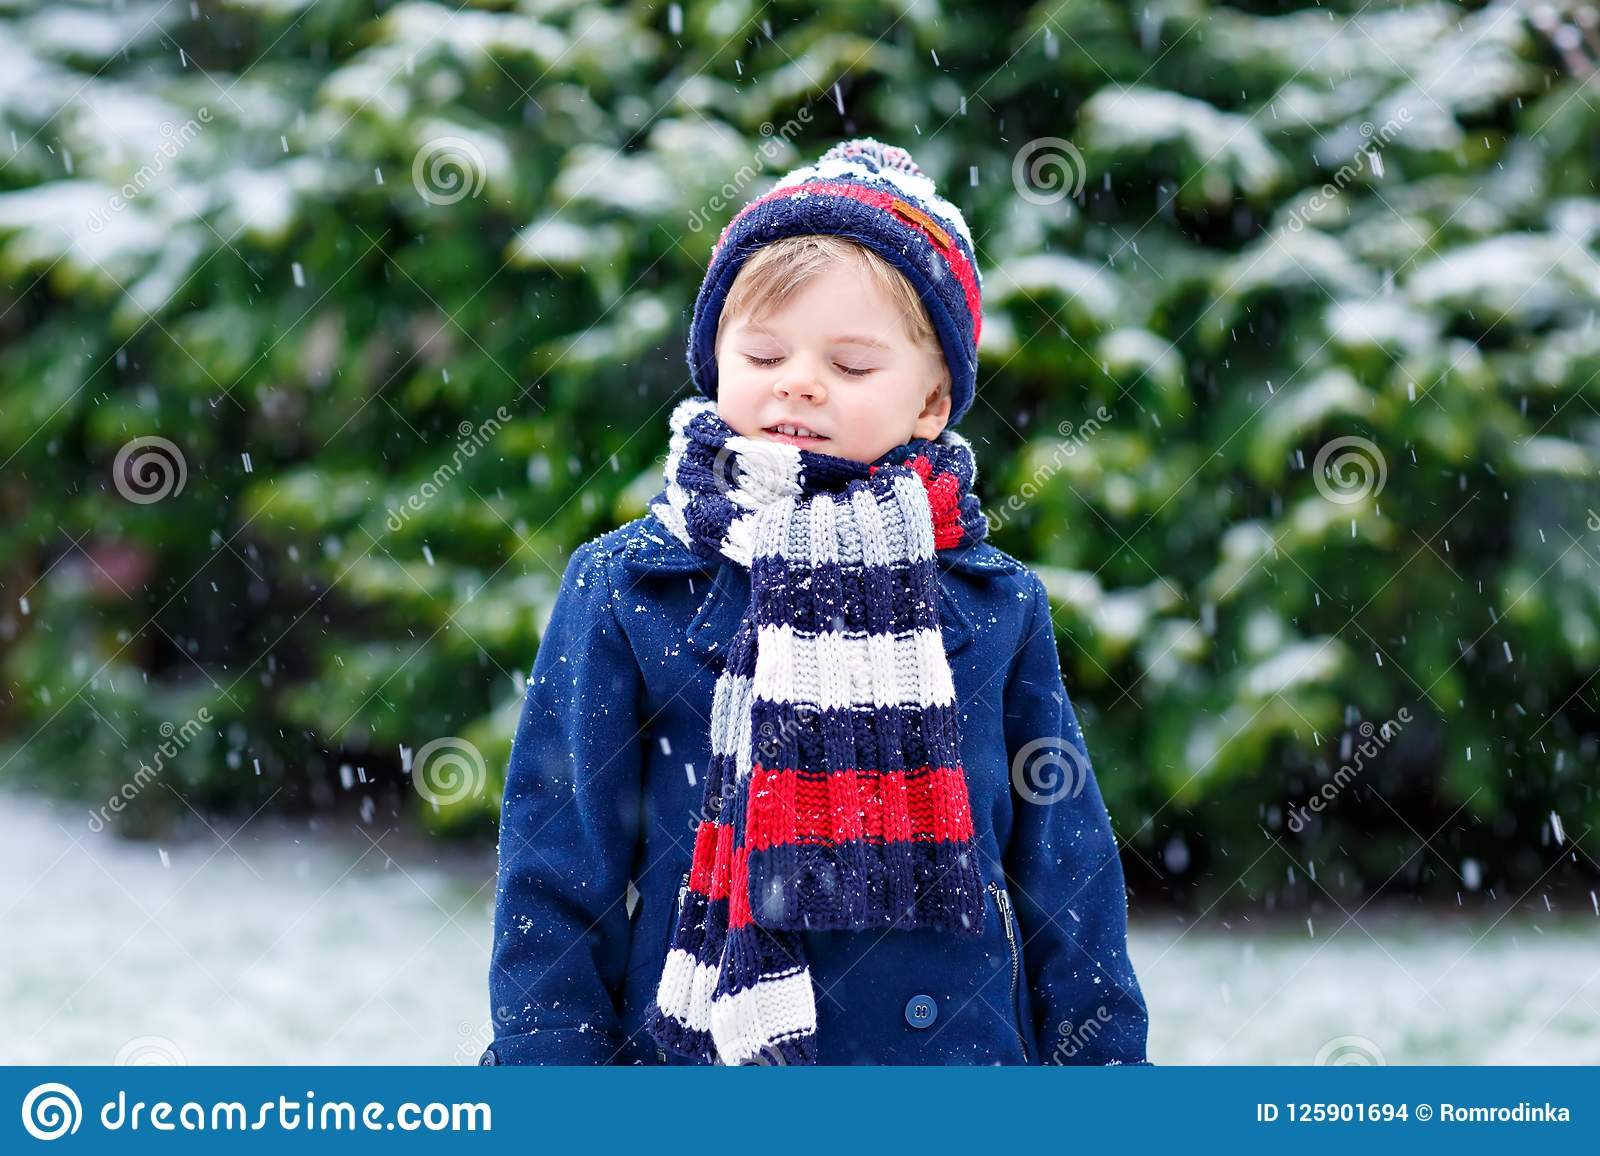 44b3904b5 Cute Little Funny Child In Colorful Winter Fashion Clothes Having ...